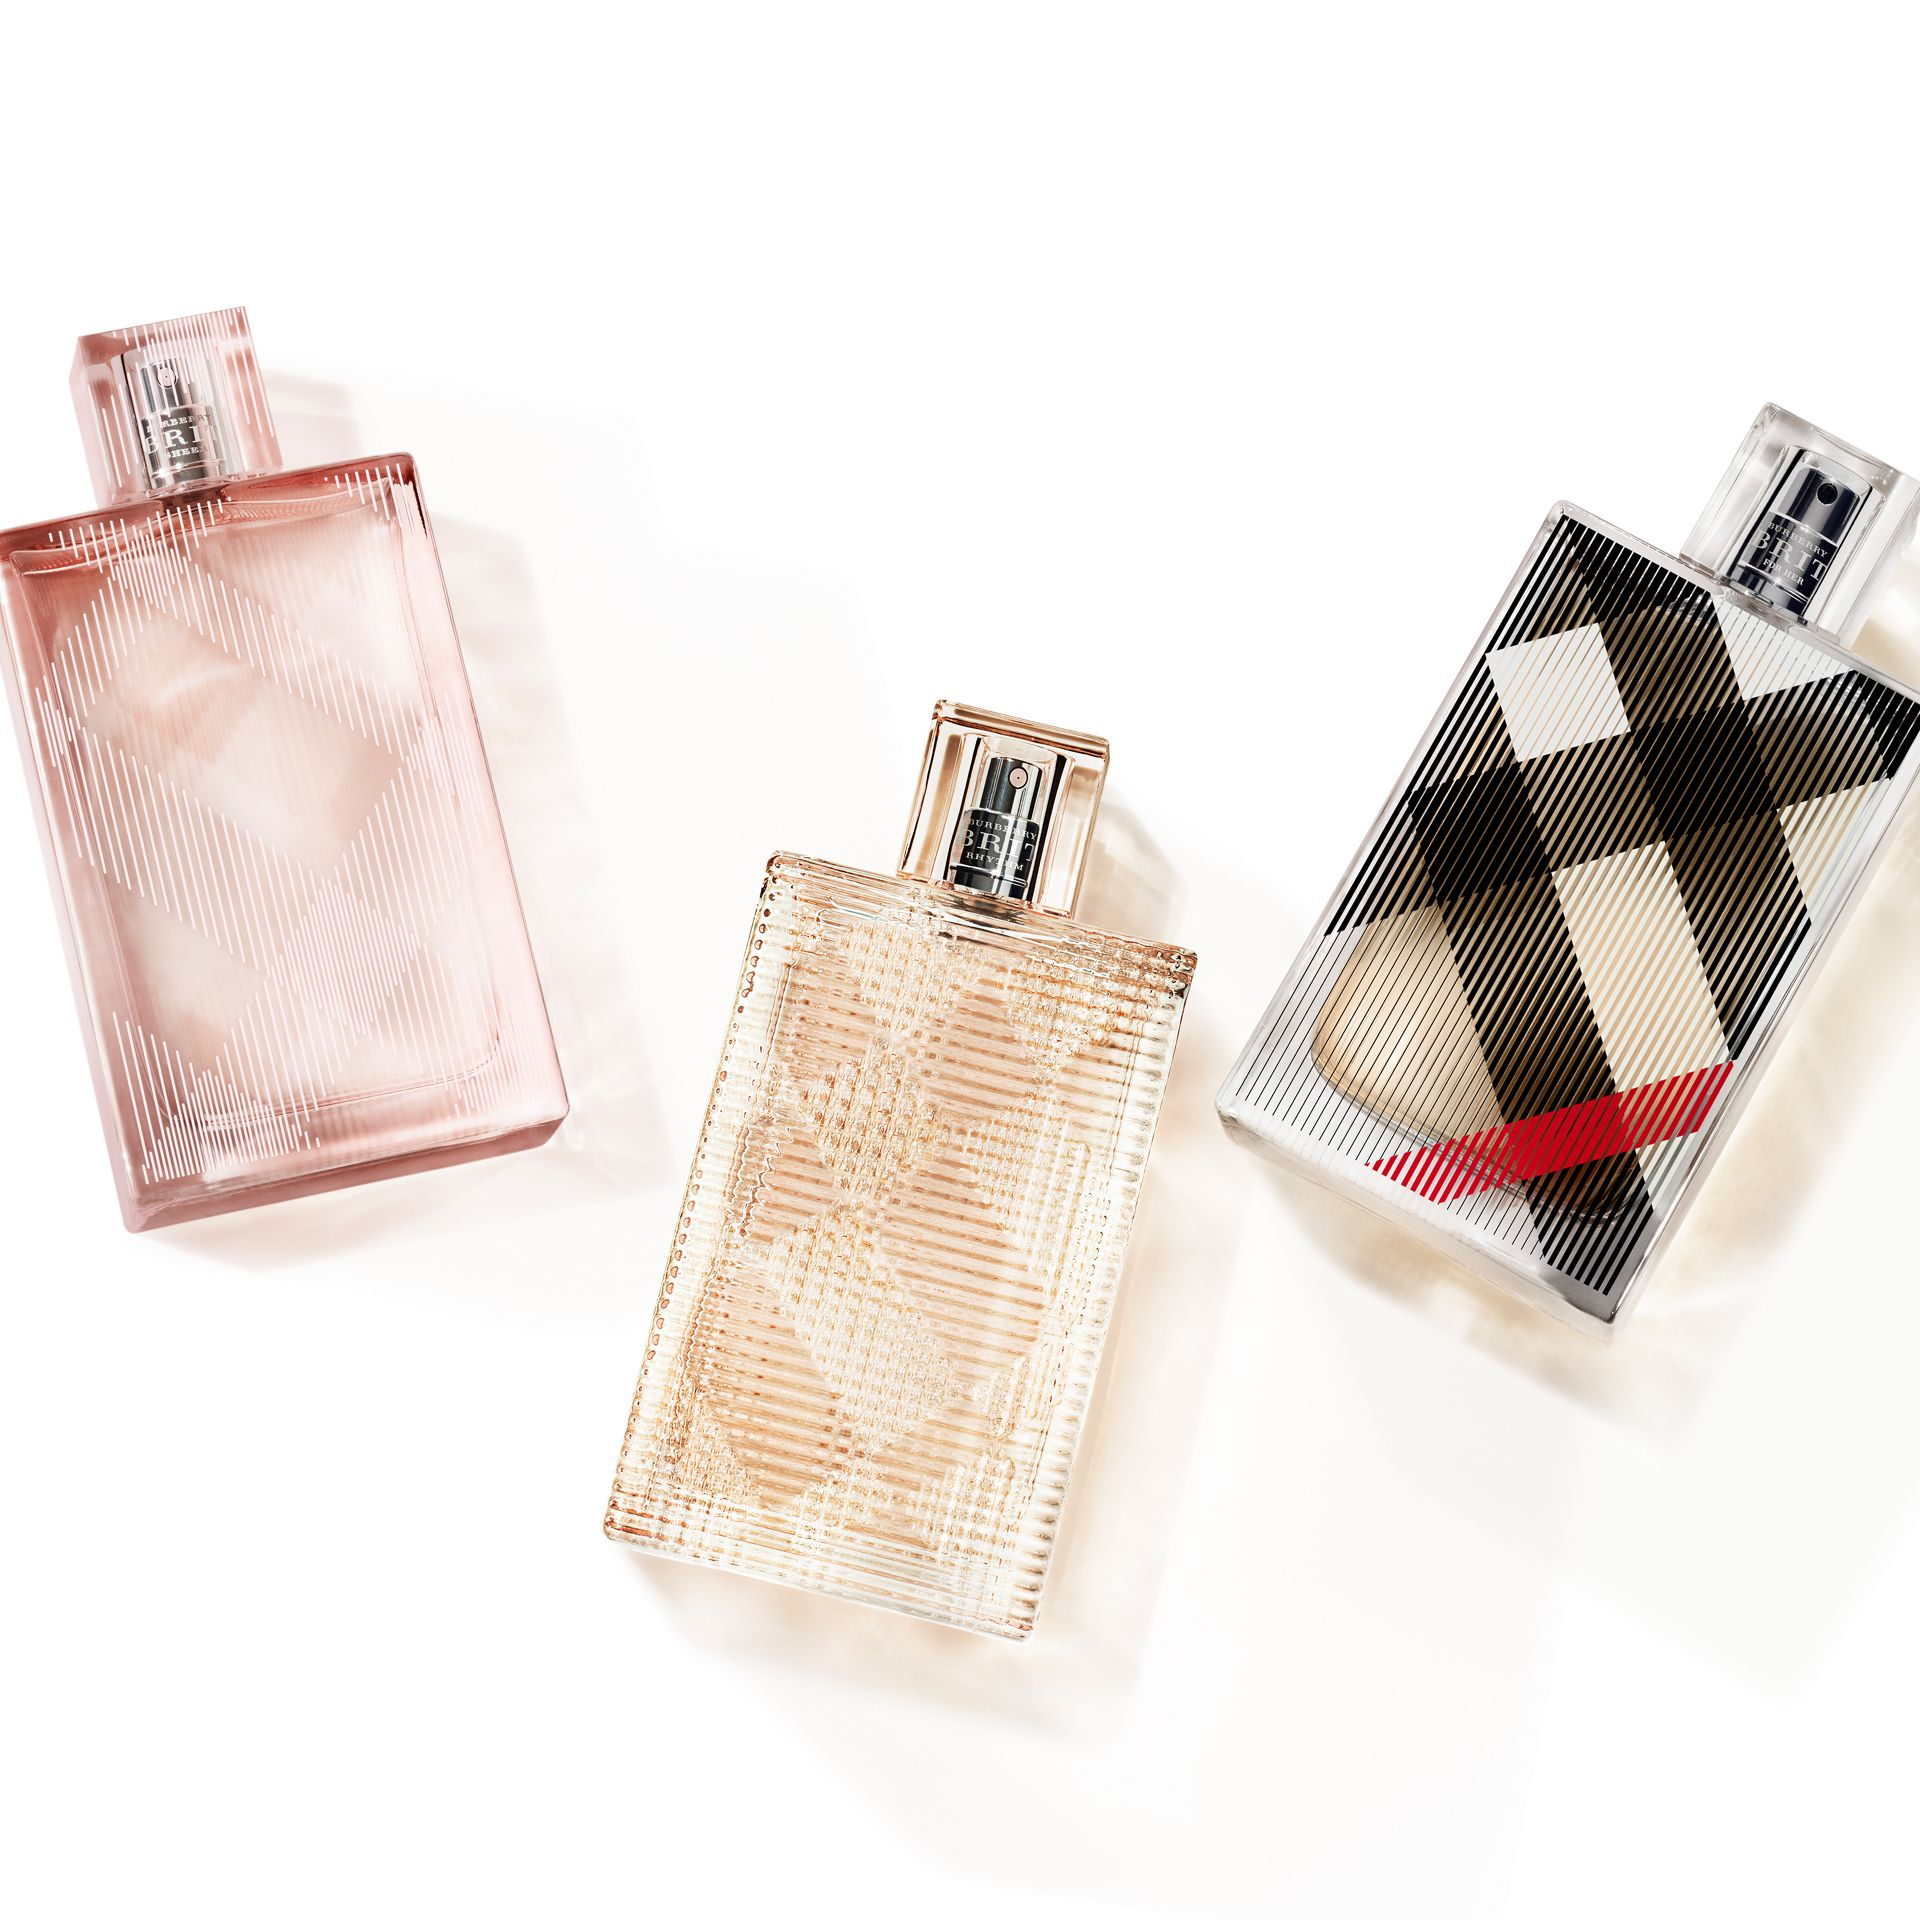 Burberry Brit Sheer Eau de Toilette 50ml - Women | Burberry Canada - gallery image 3